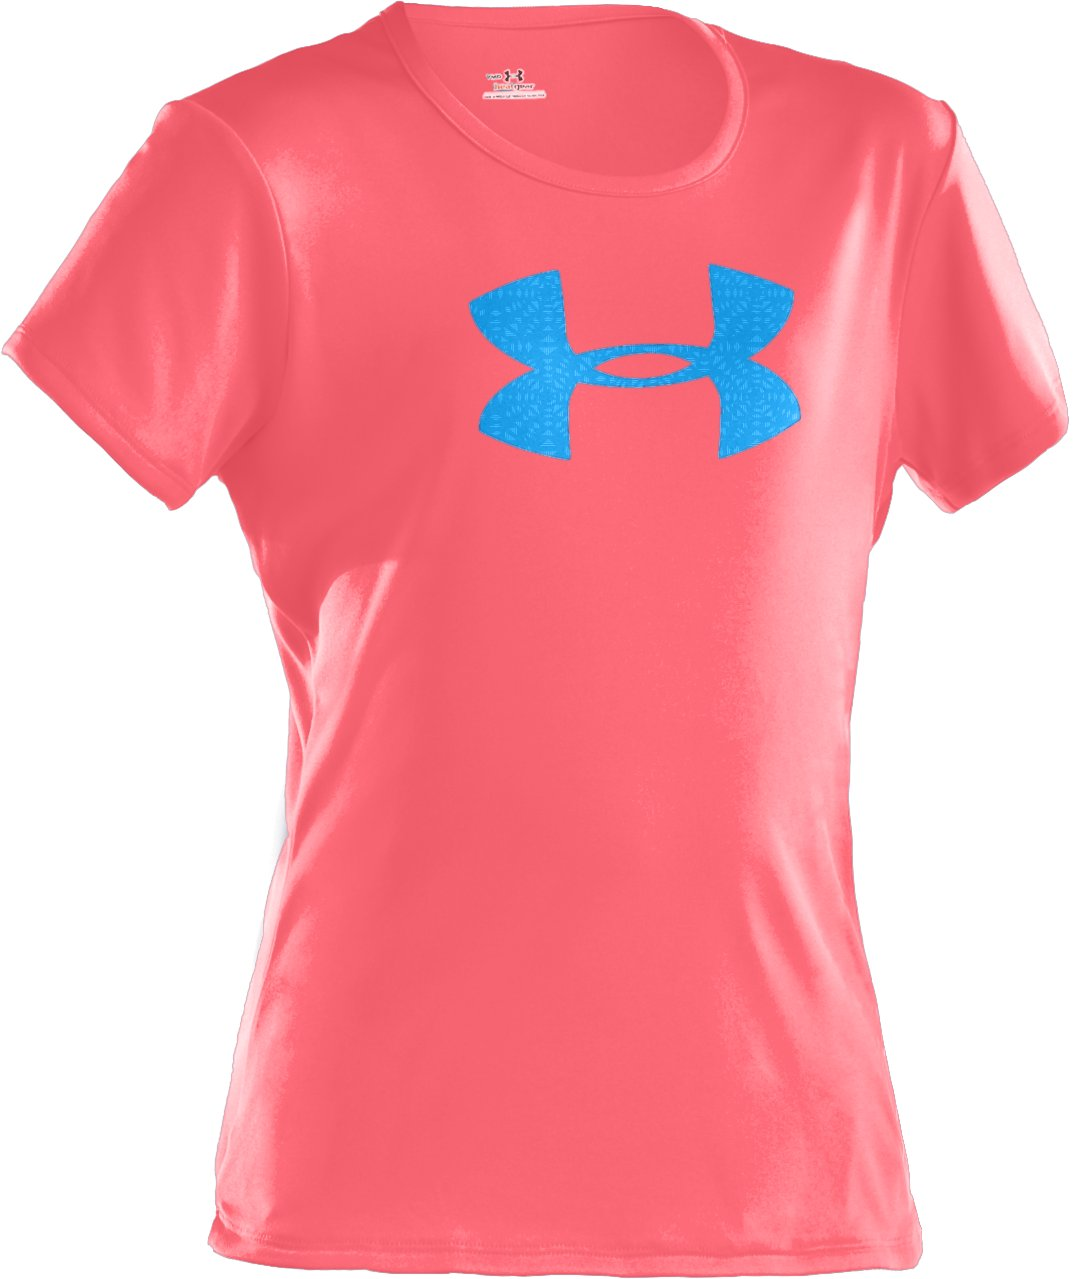 Girls' UA Big Logo Short Sleeve T-Shirt, BRILLIANCE, zoomed image